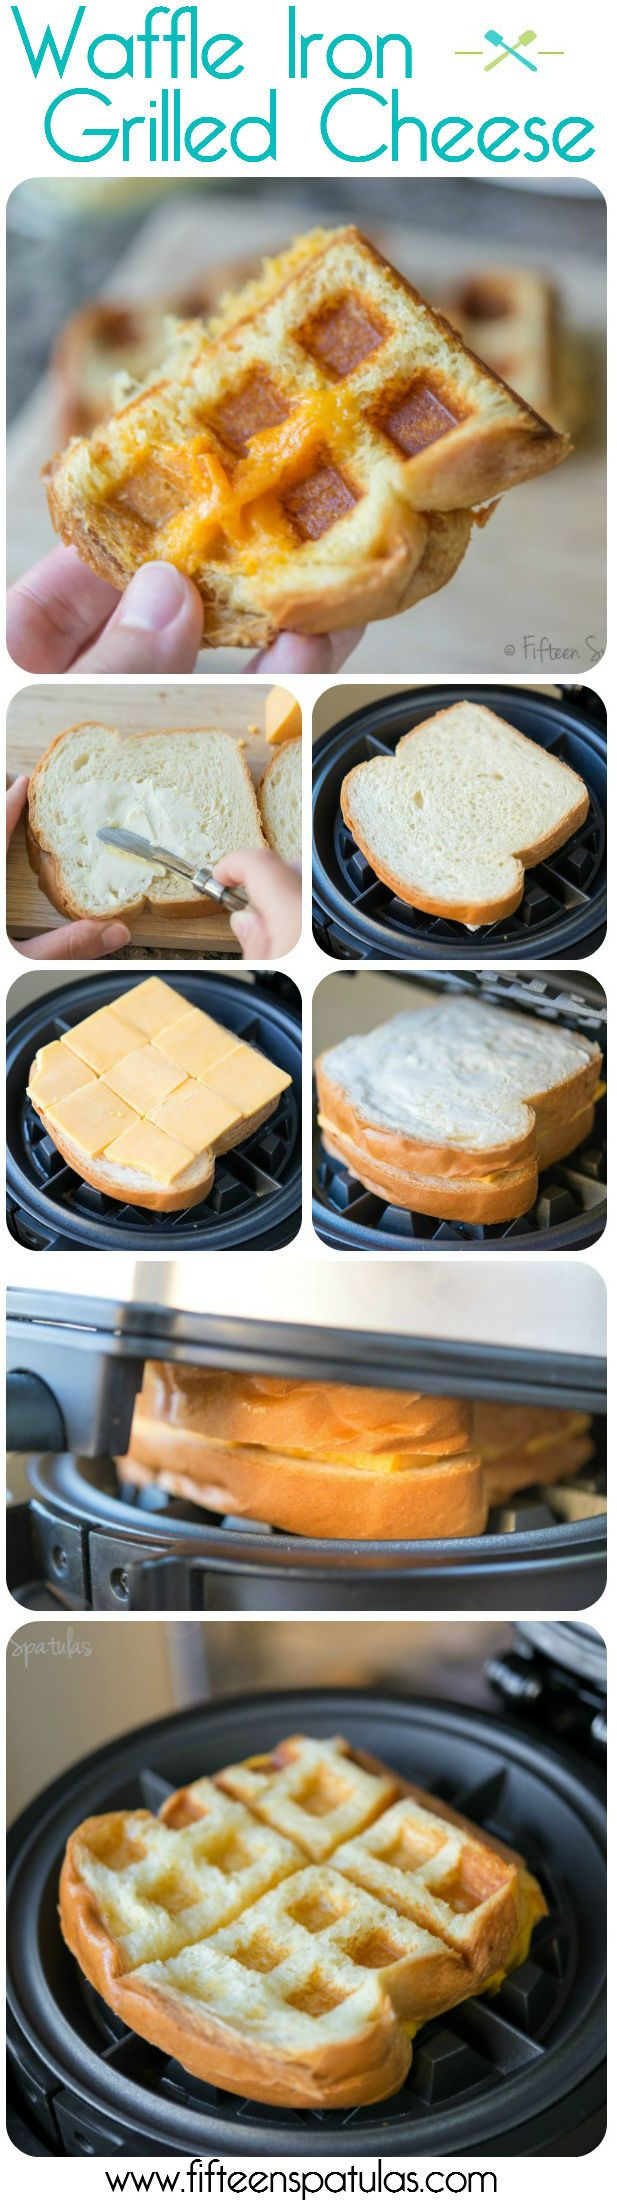 Waffle Iron Grilled Cheese Sandwich.~ we are going to have some fun with our new toy. @Jenna Nelson Nelson Nelson Nelson Nelson Hill Zlotkowski @Rachel Z: